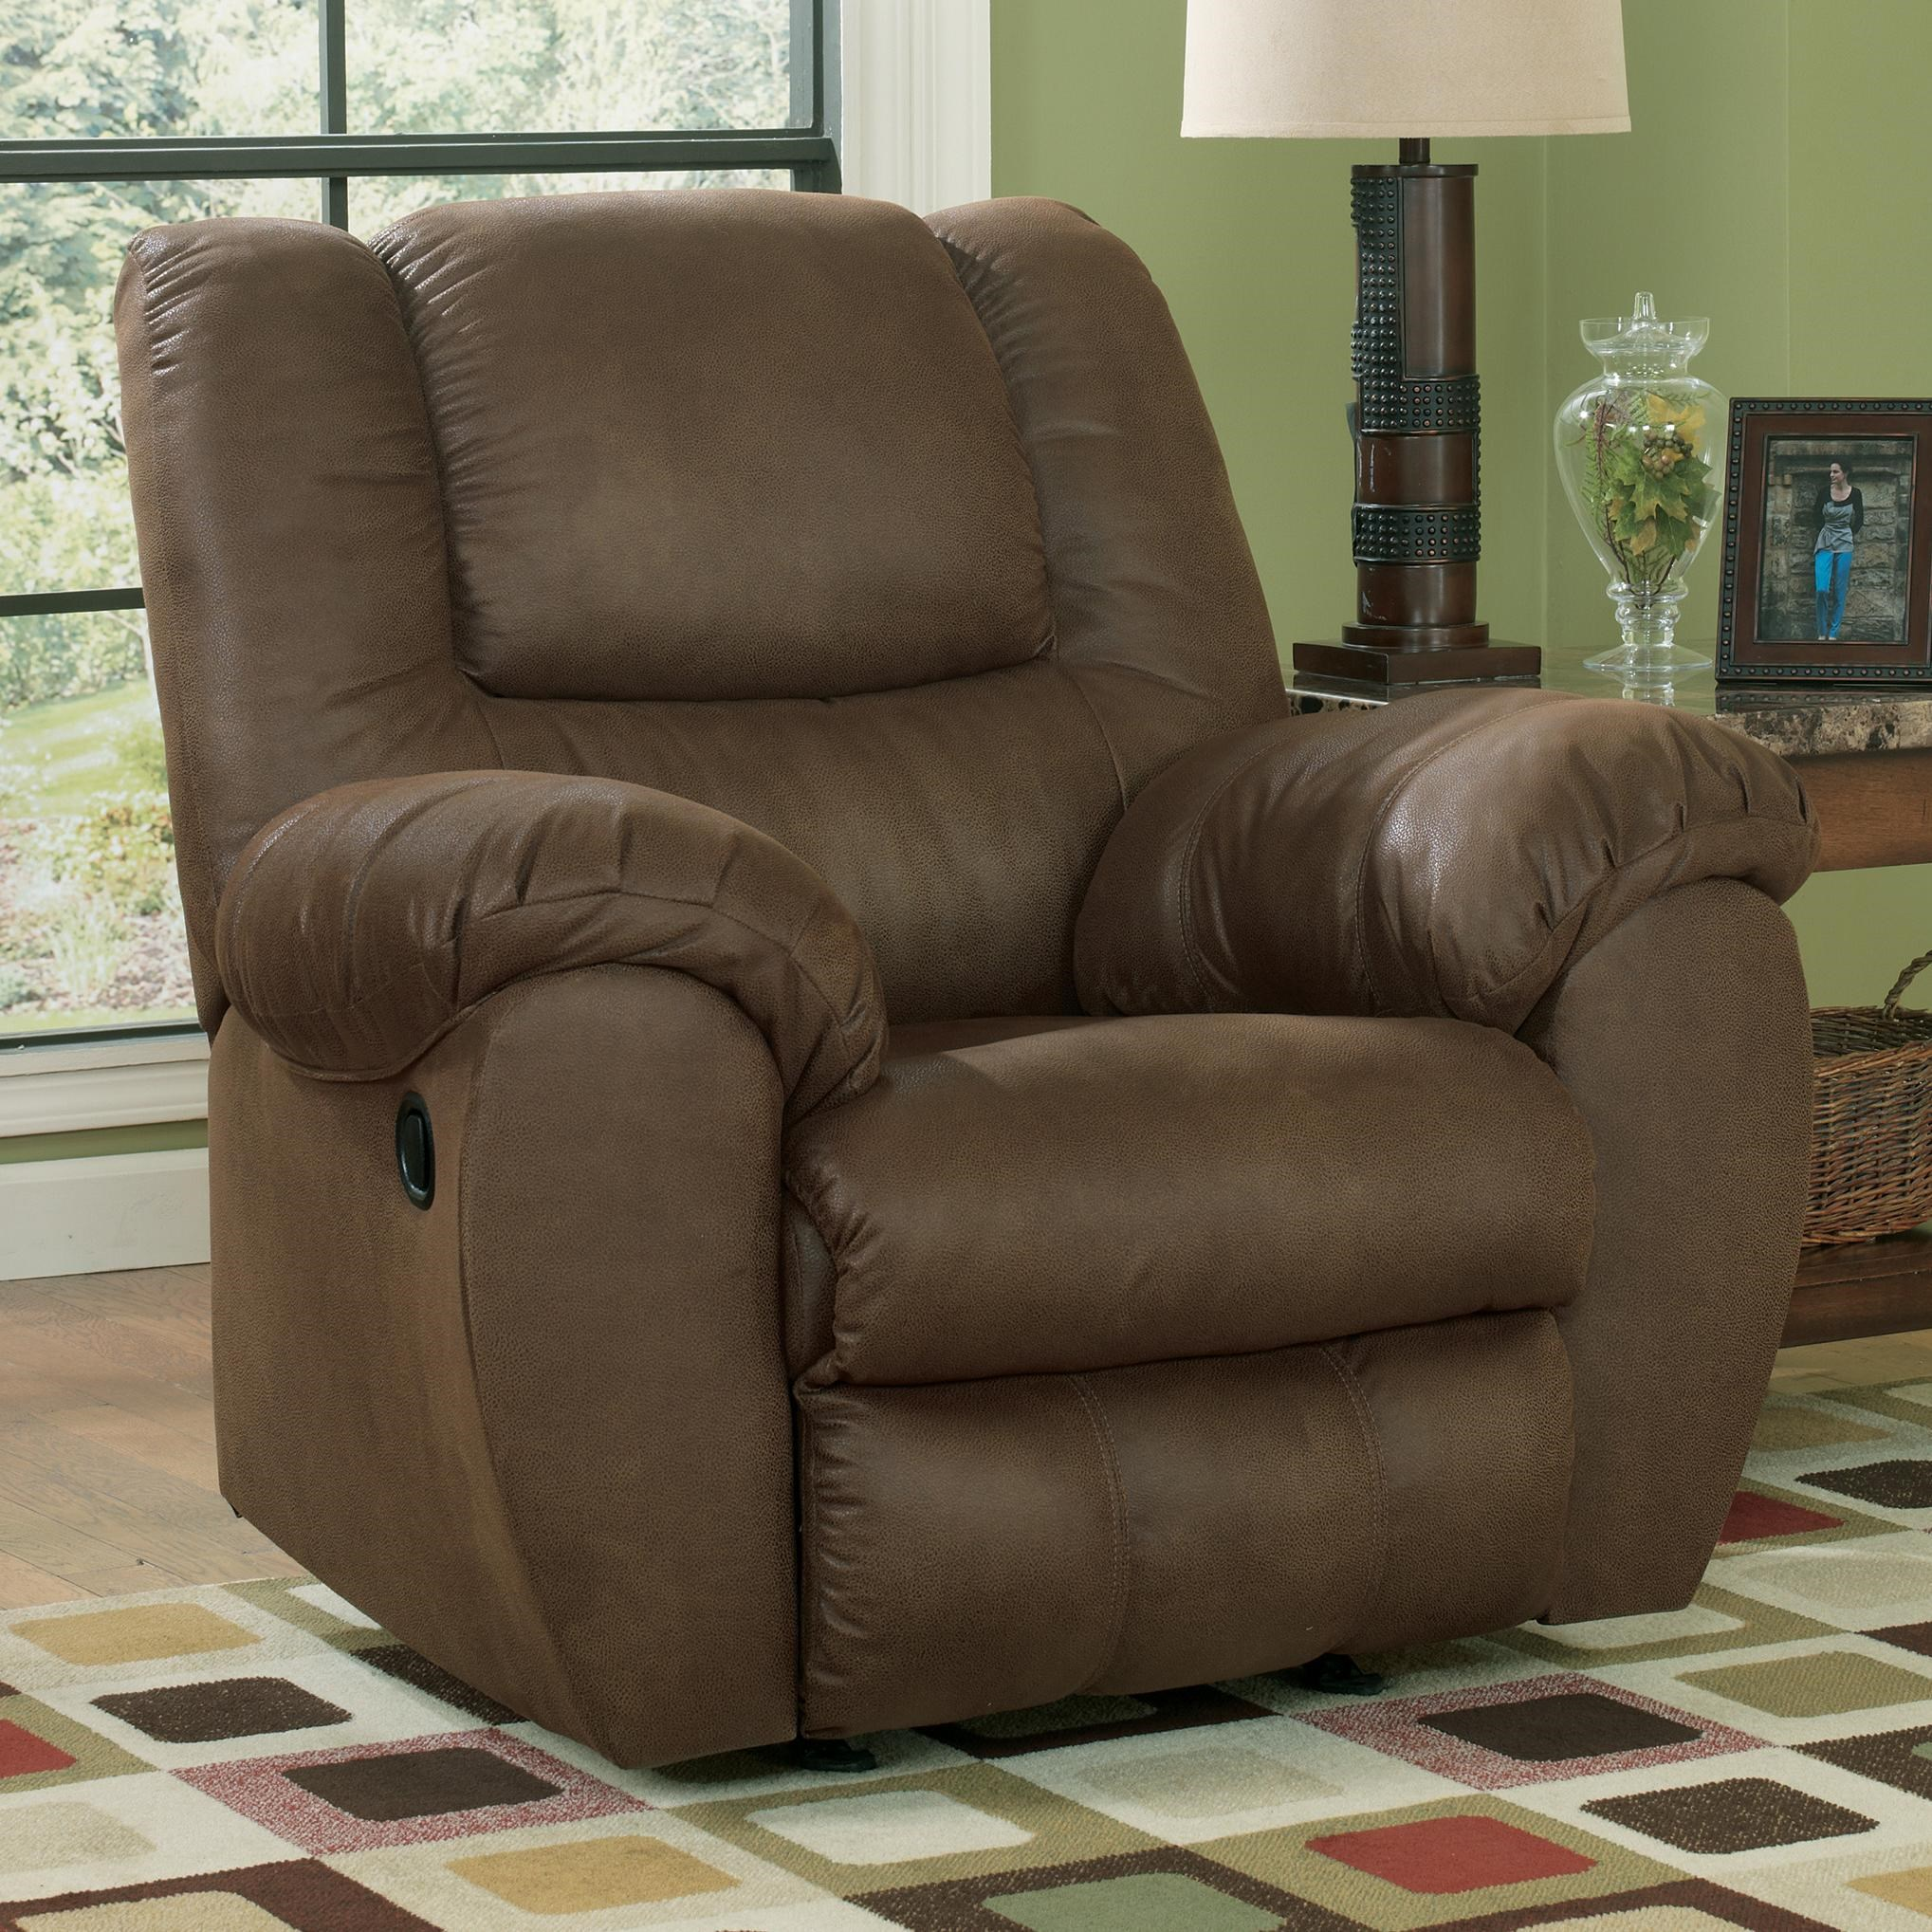 benchcraft quarterback canyon rocker recliner in brown faux leather - Leather Rocker Recliner